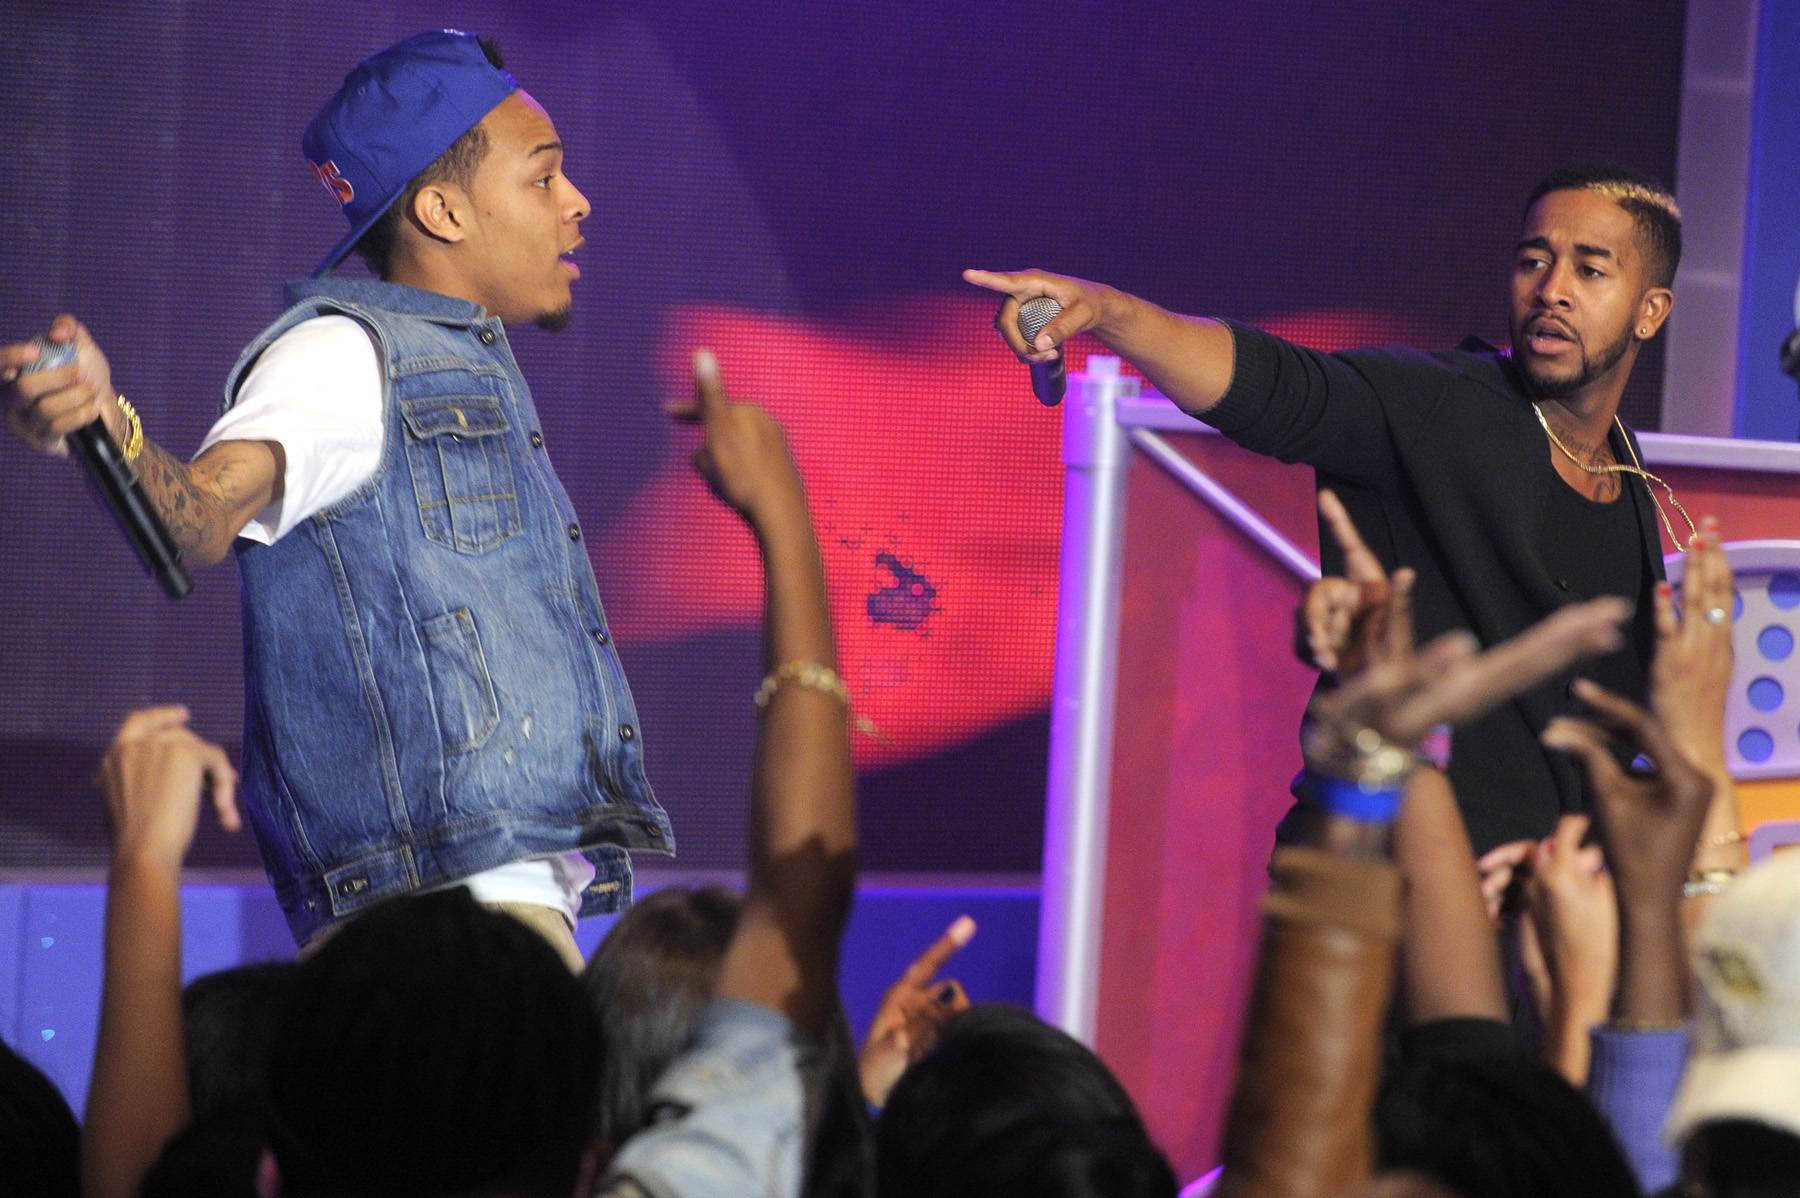 """Dynamic Duo - In 2007, Bow Wow and Omarion teamed up for a Best of Both World-type collaboration. They released Face Off, which, with the help of the hits """"Girlfriend"""" and """"Hey Baby,"""" was certified gold.(Photo: John Ricard / BET)"""